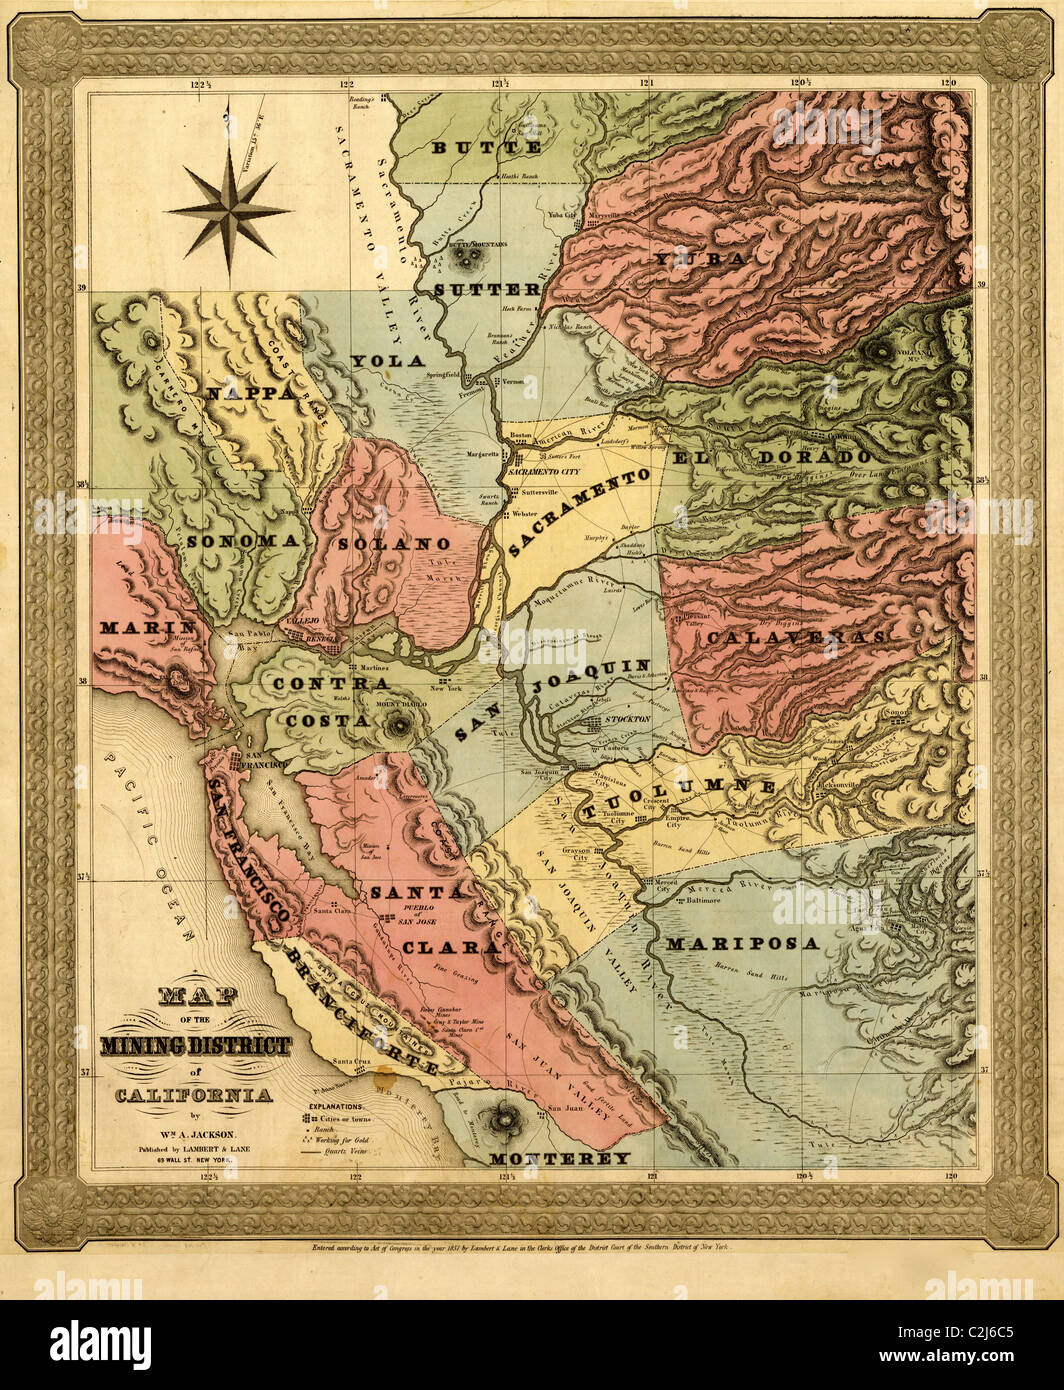 California Mining District - 1851 - Stock Image